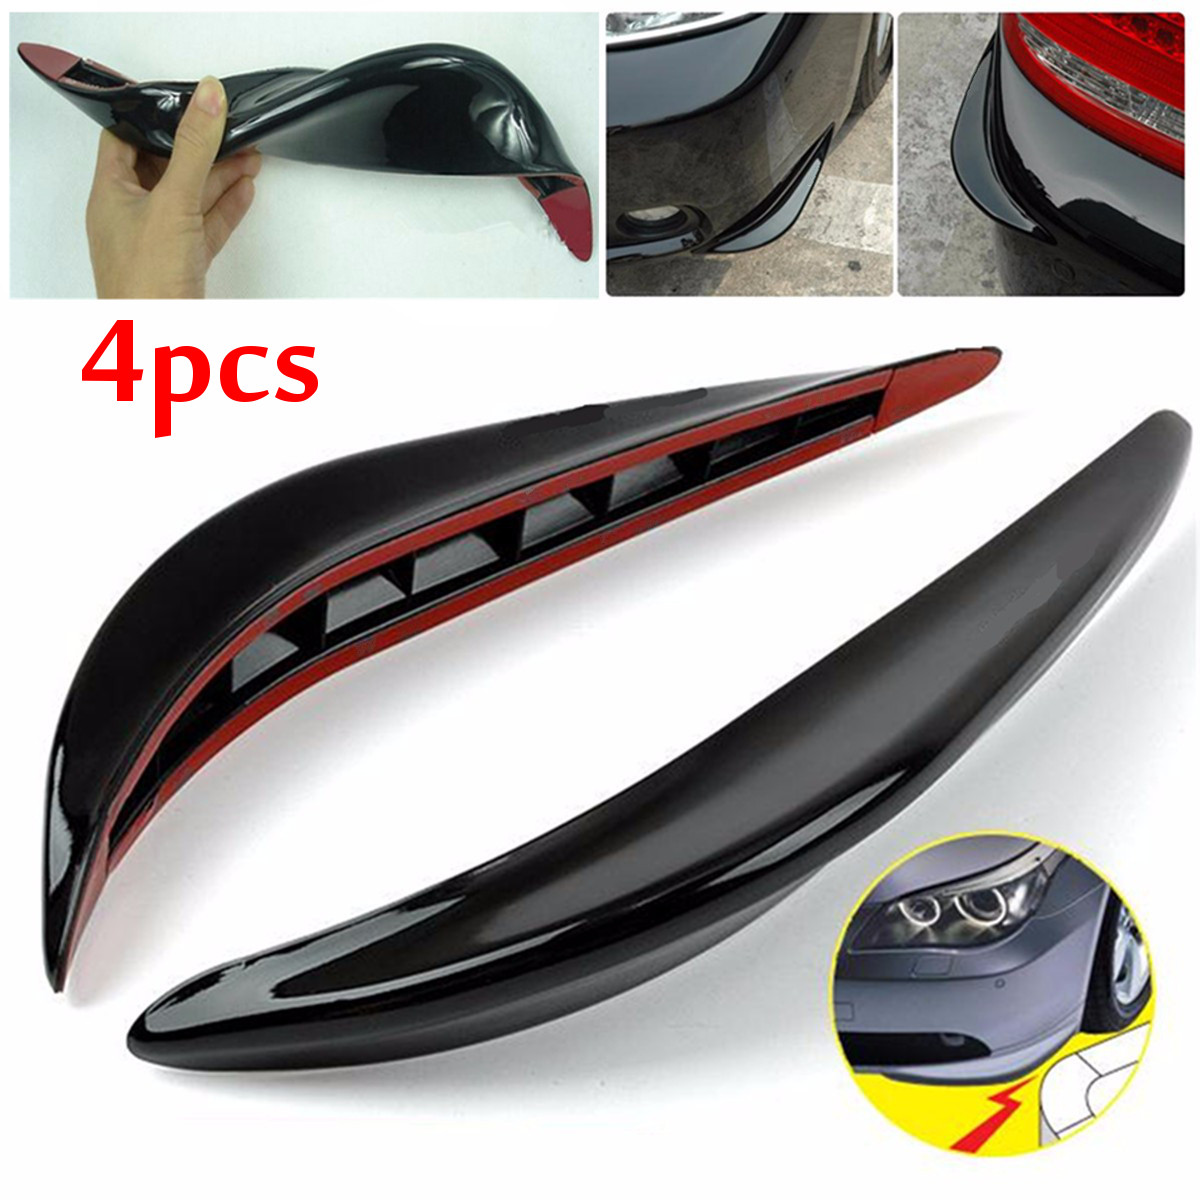 M.way 4Pcs Universal Stick-on Car Front Rear Bumper Protector Protection Guard Anti-rub Edge Lip Anticollision for Trunk Car